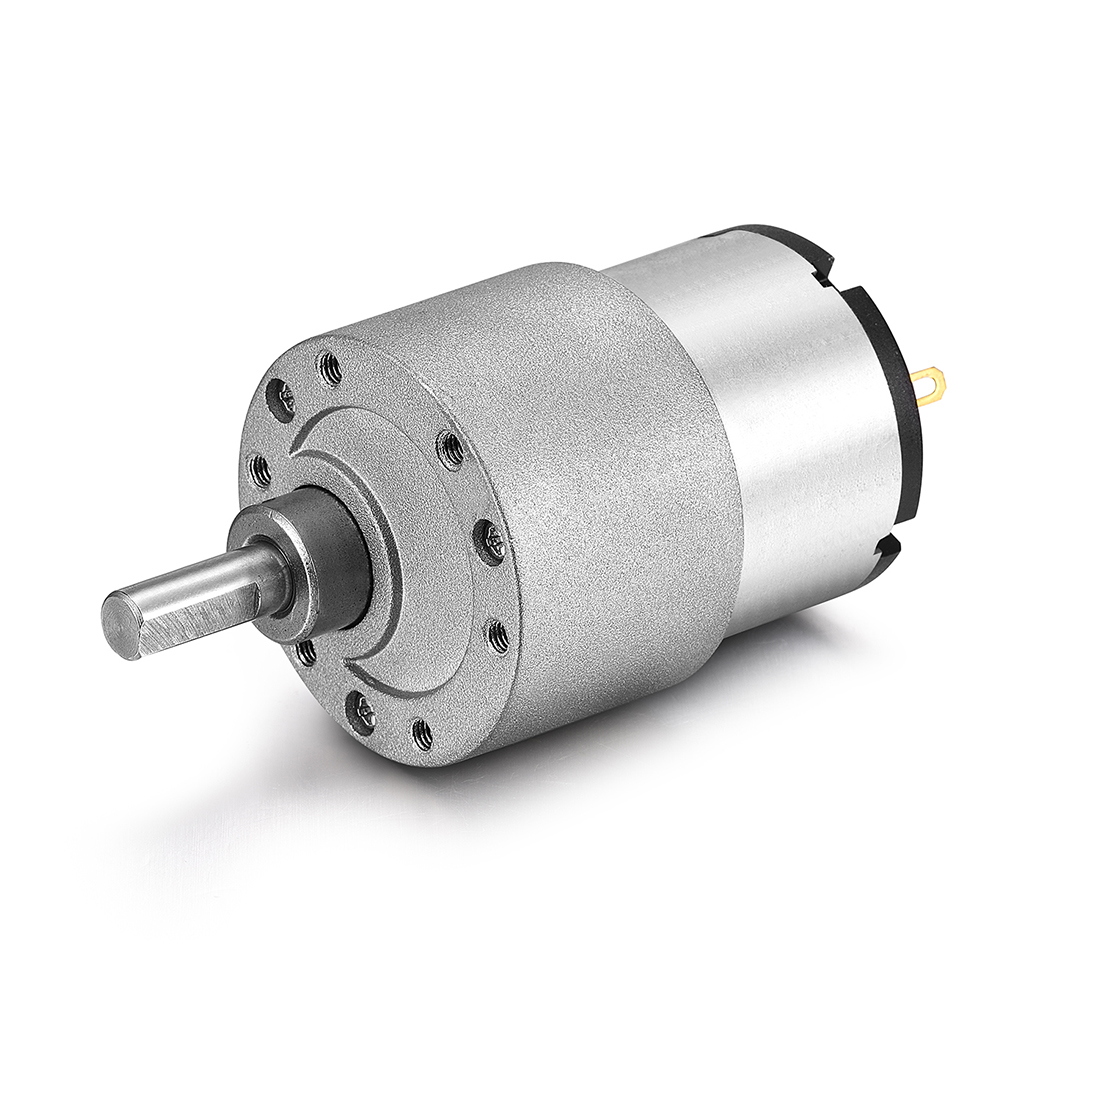 DC 12V 960RPM 6mm Diameter Shaft Electric Geared Box Speed Reduction Motor